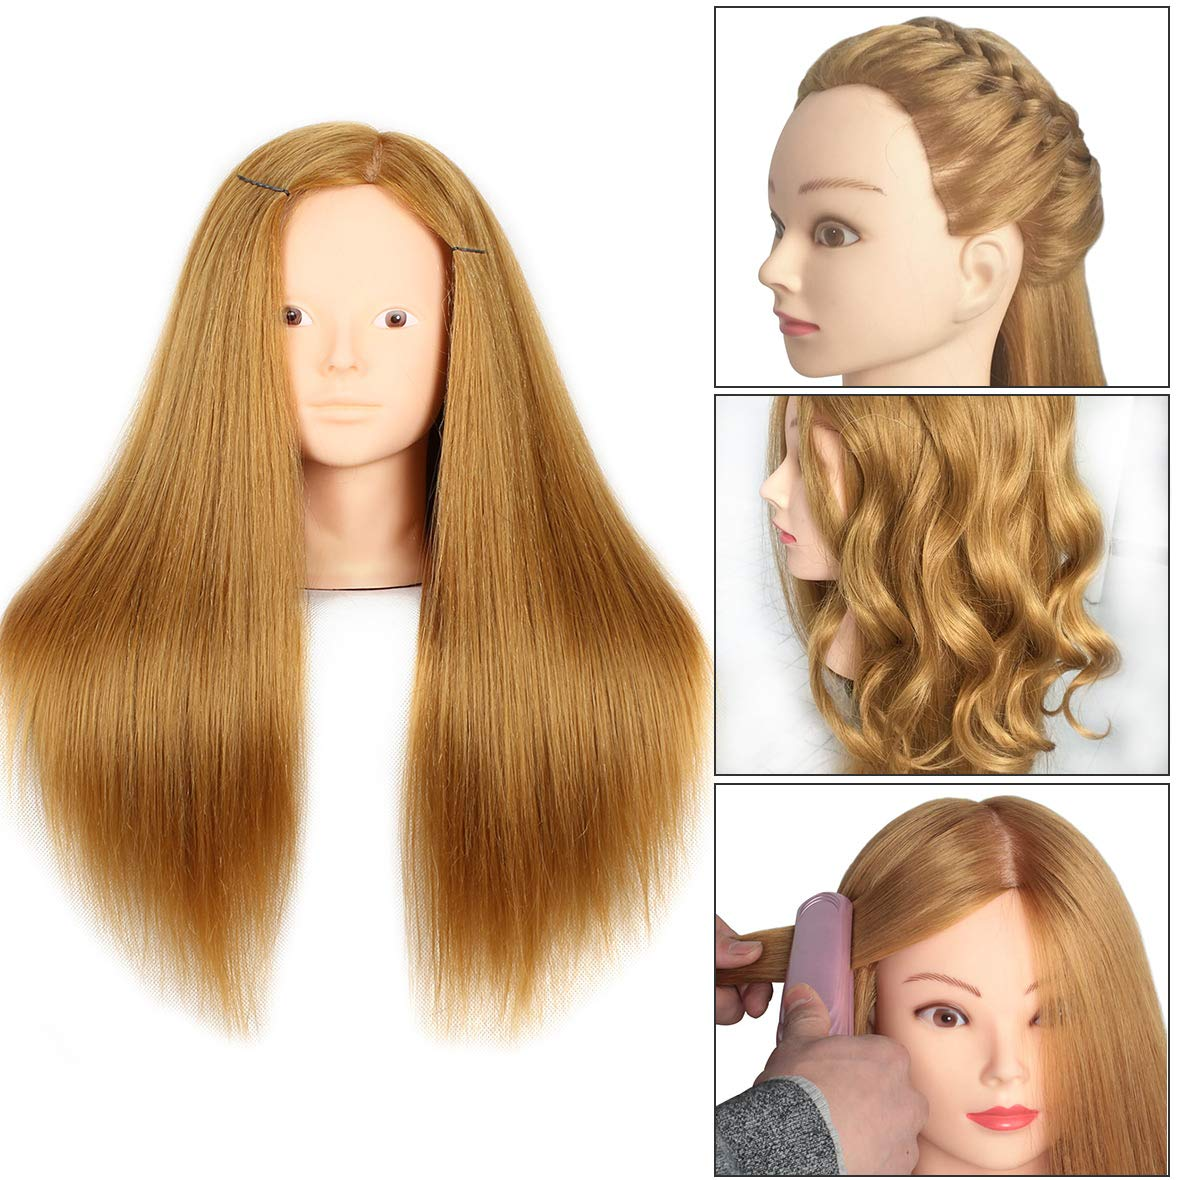 20 Inch Mannequin Head Human Hair Styling Training Head Manikin Cosmetology Head Hair Hairdressing training Face Makeup Practice head 27#